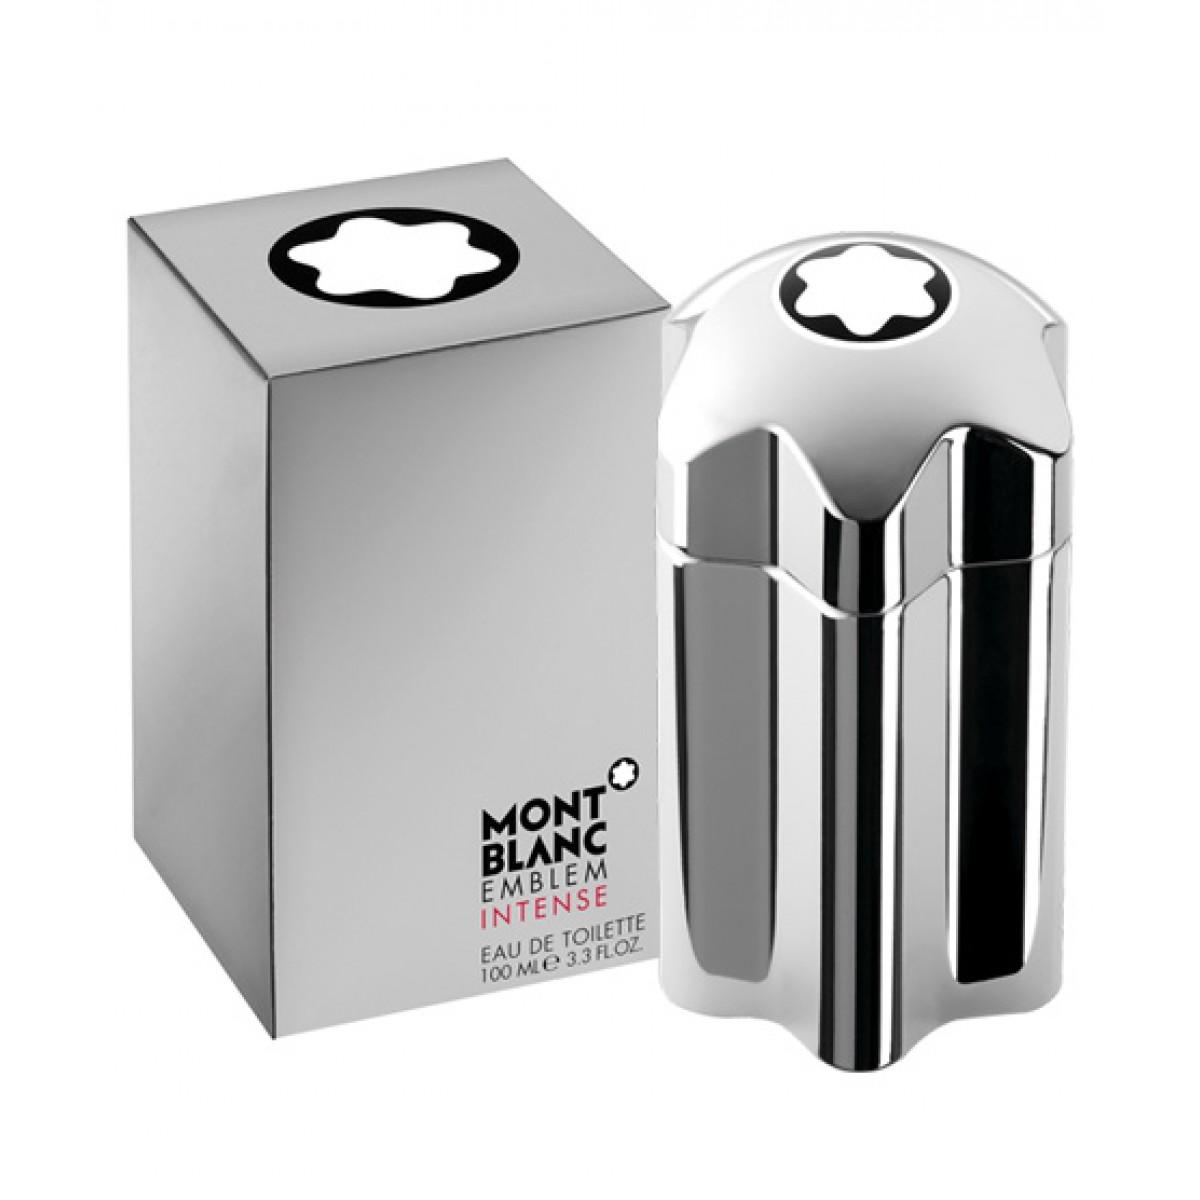 Buy Sell Cheapest Map Gift Voucher Best Quality Product Deals 100000 No Exp Date Montblanc Emblem Intense Man 100ml Free 300000